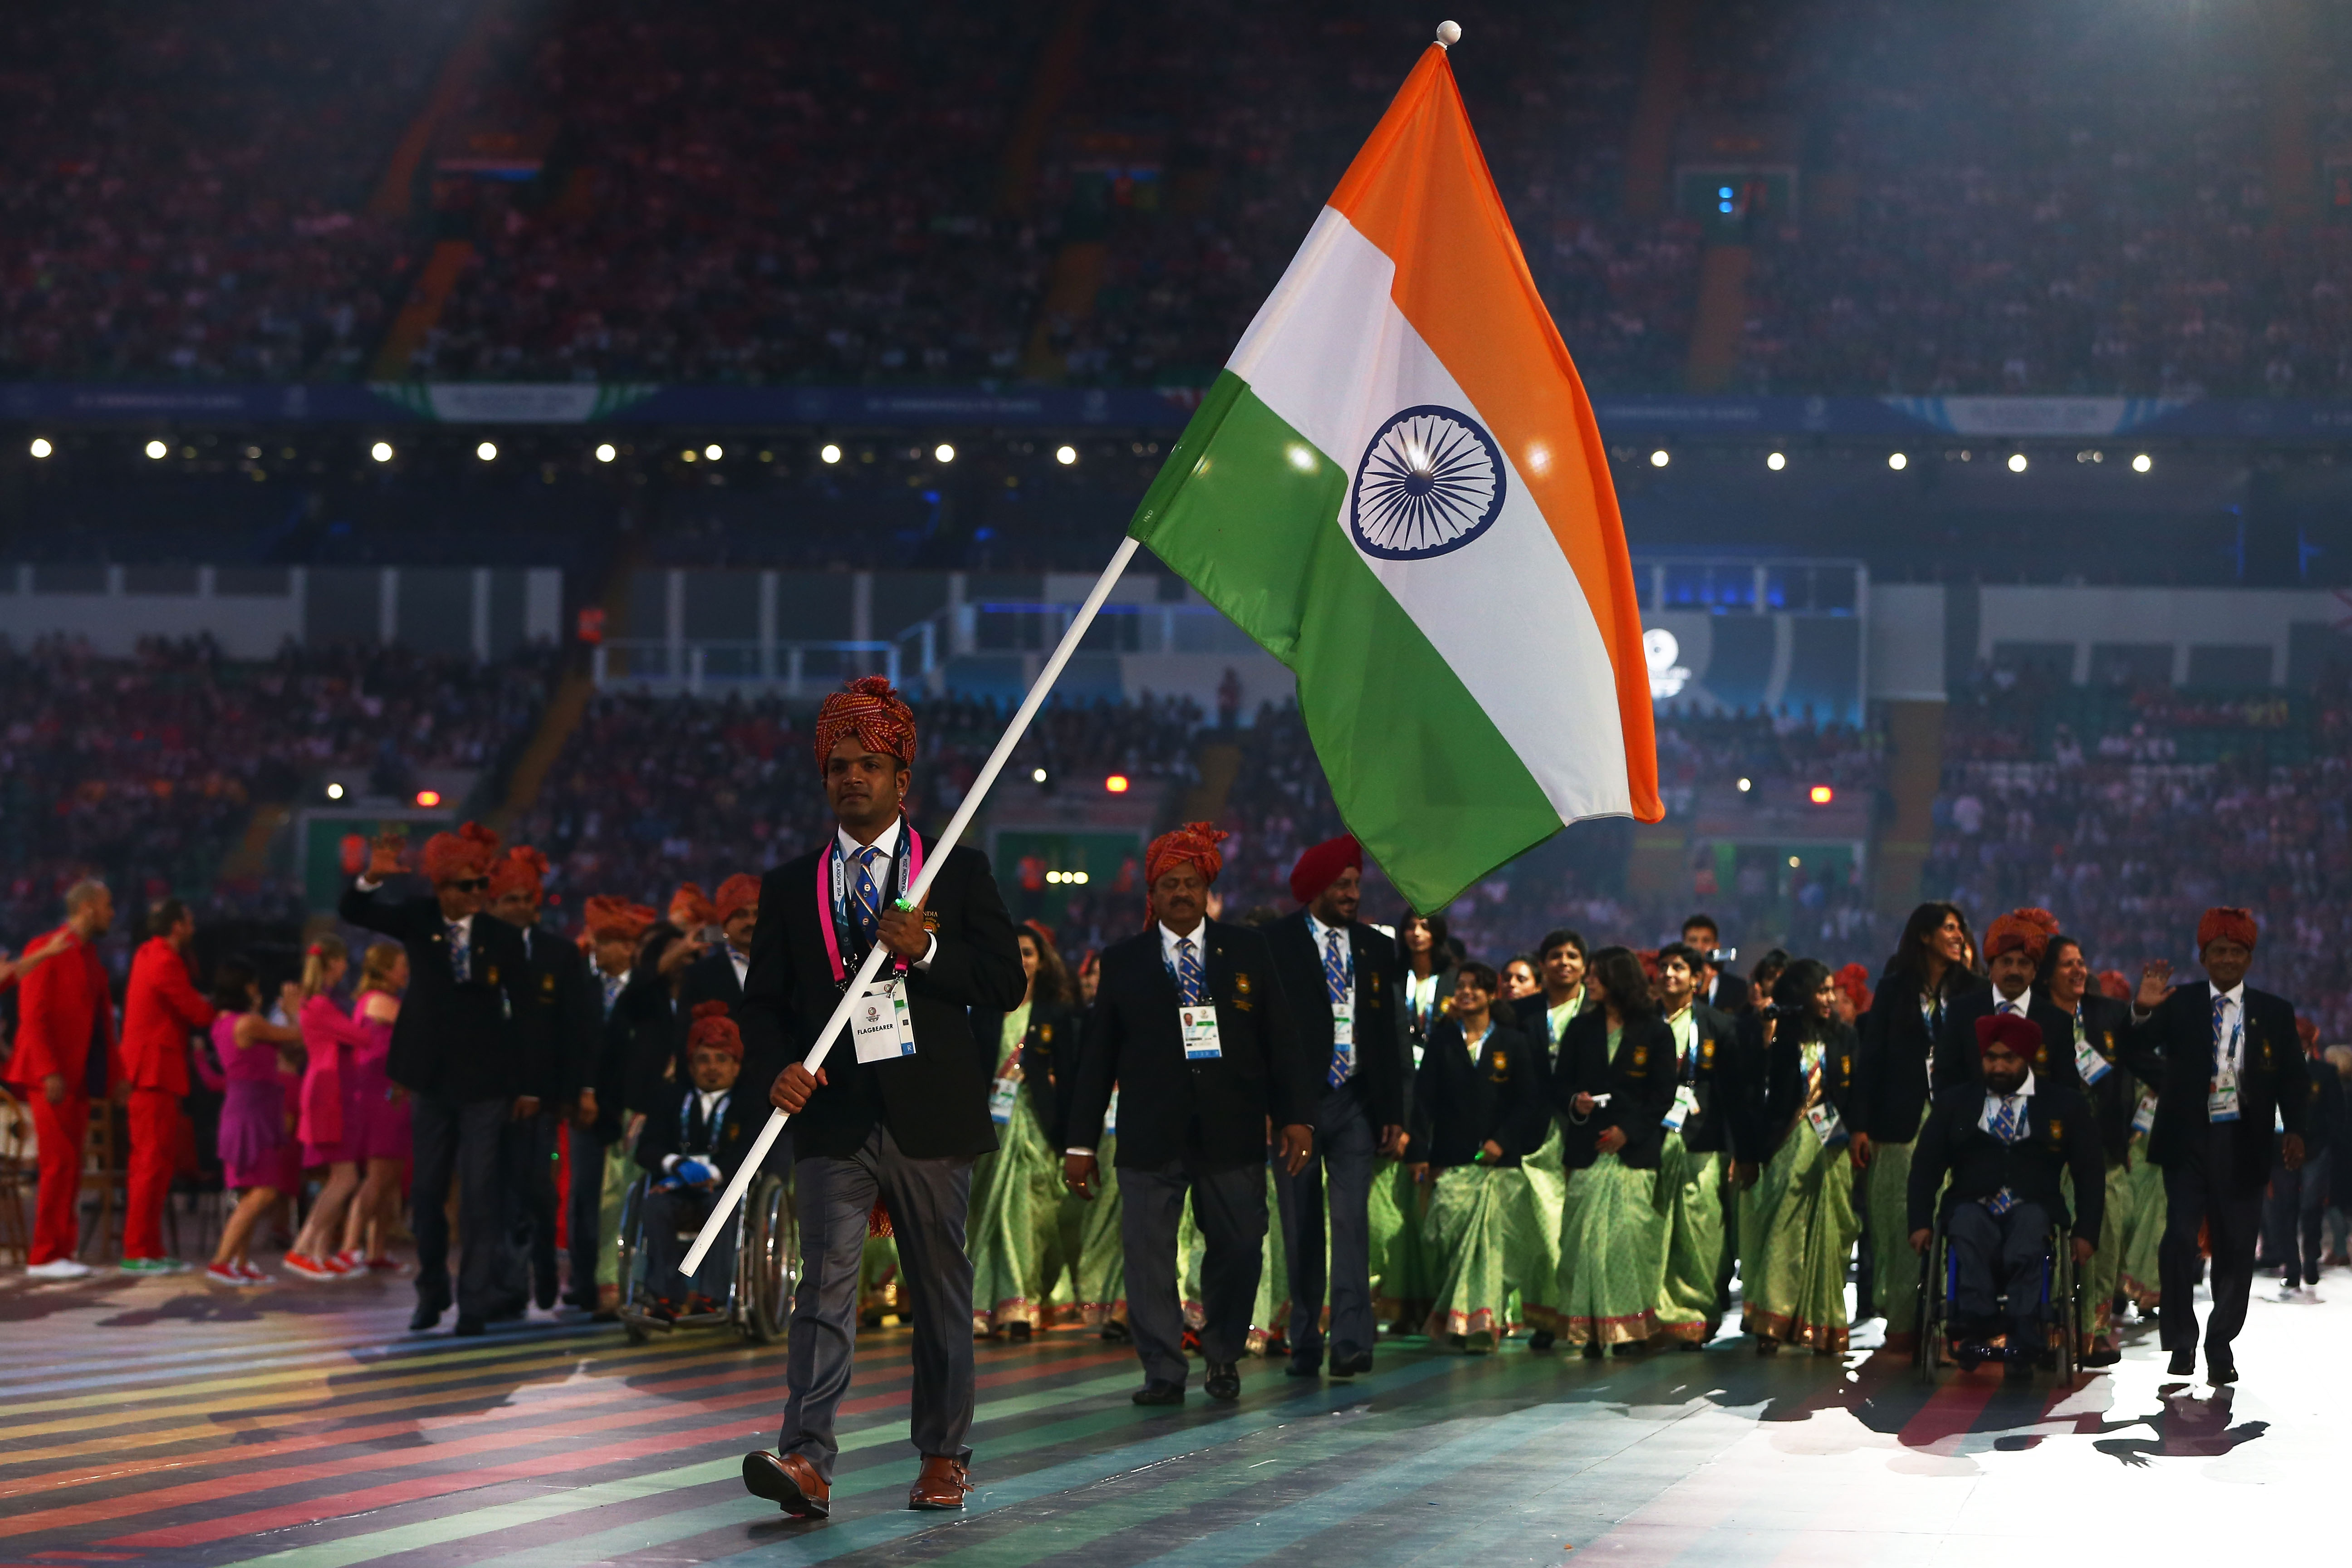 Flag bearer and Shooter Vijay Kumar of India leads the team during the Opening Ceremony for the Glasgow 2014 Commonwealth Games at Celtic Park on July 23, 2014 in Glasgow, Scotland.  (Photo by Quinn Rooney/Getty Images)